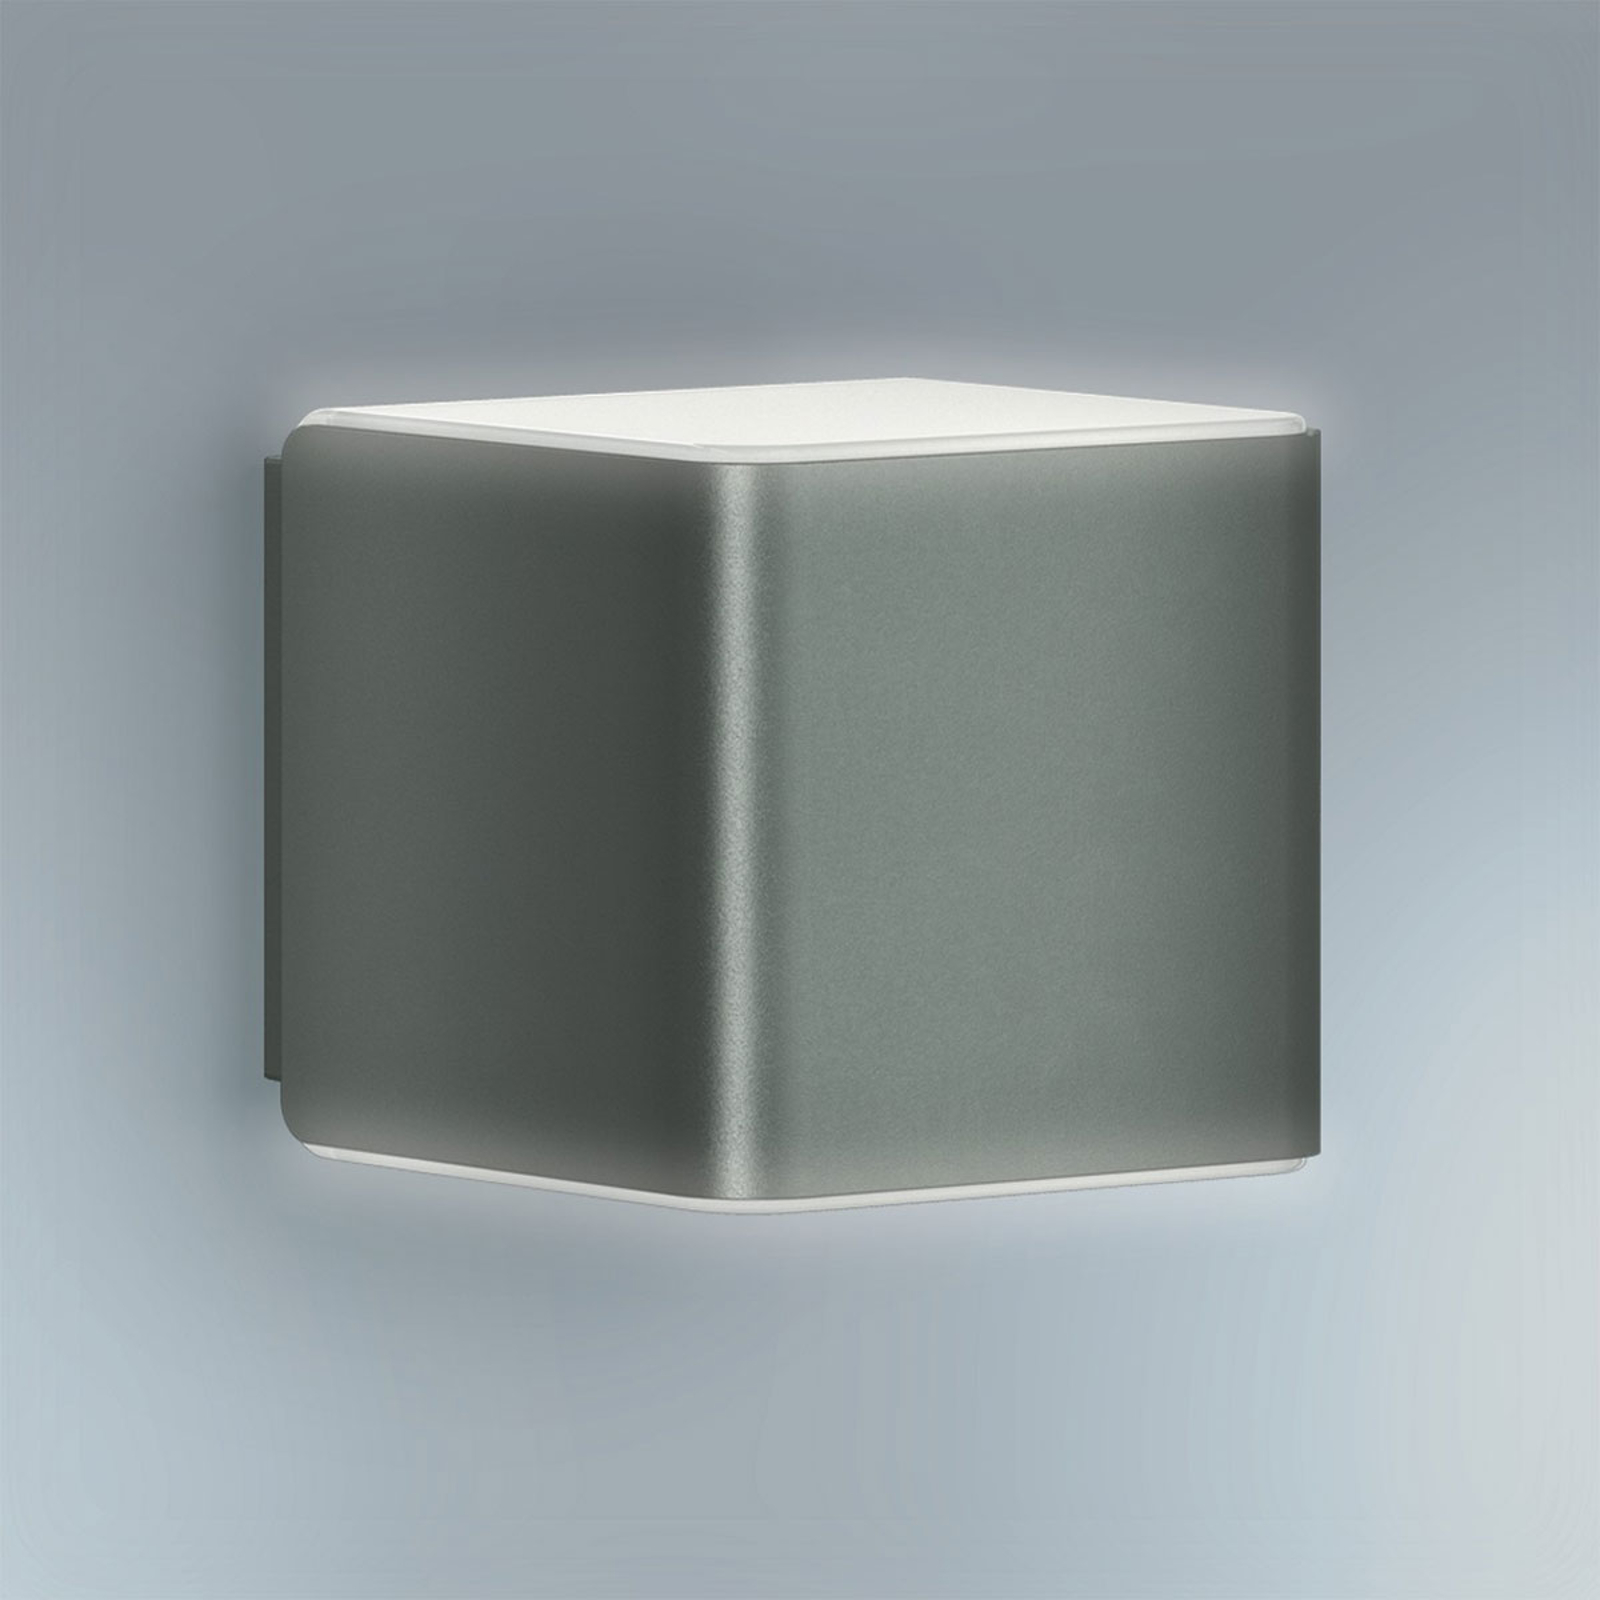 STEINEL L 840 LED iHF outdoor wall light_8505818_1